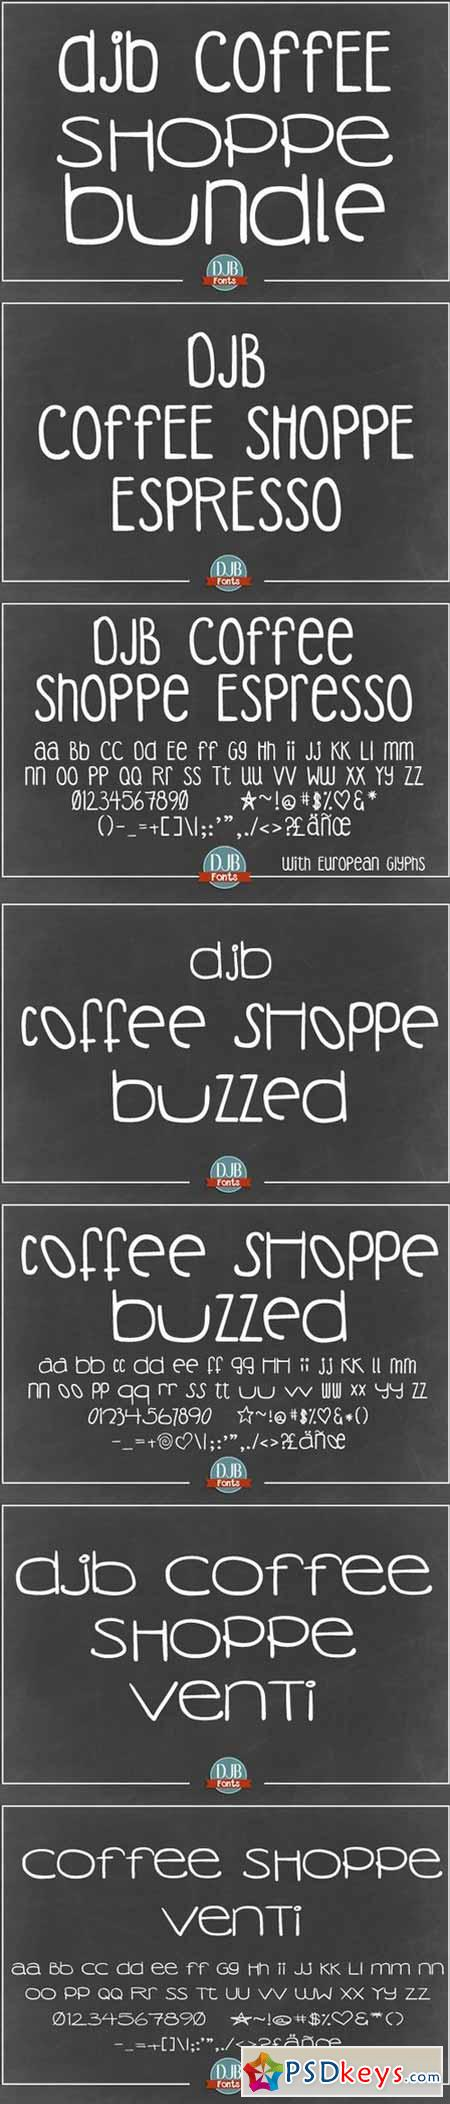 DJB Coffee Shoppe Fonts Bundle 589085